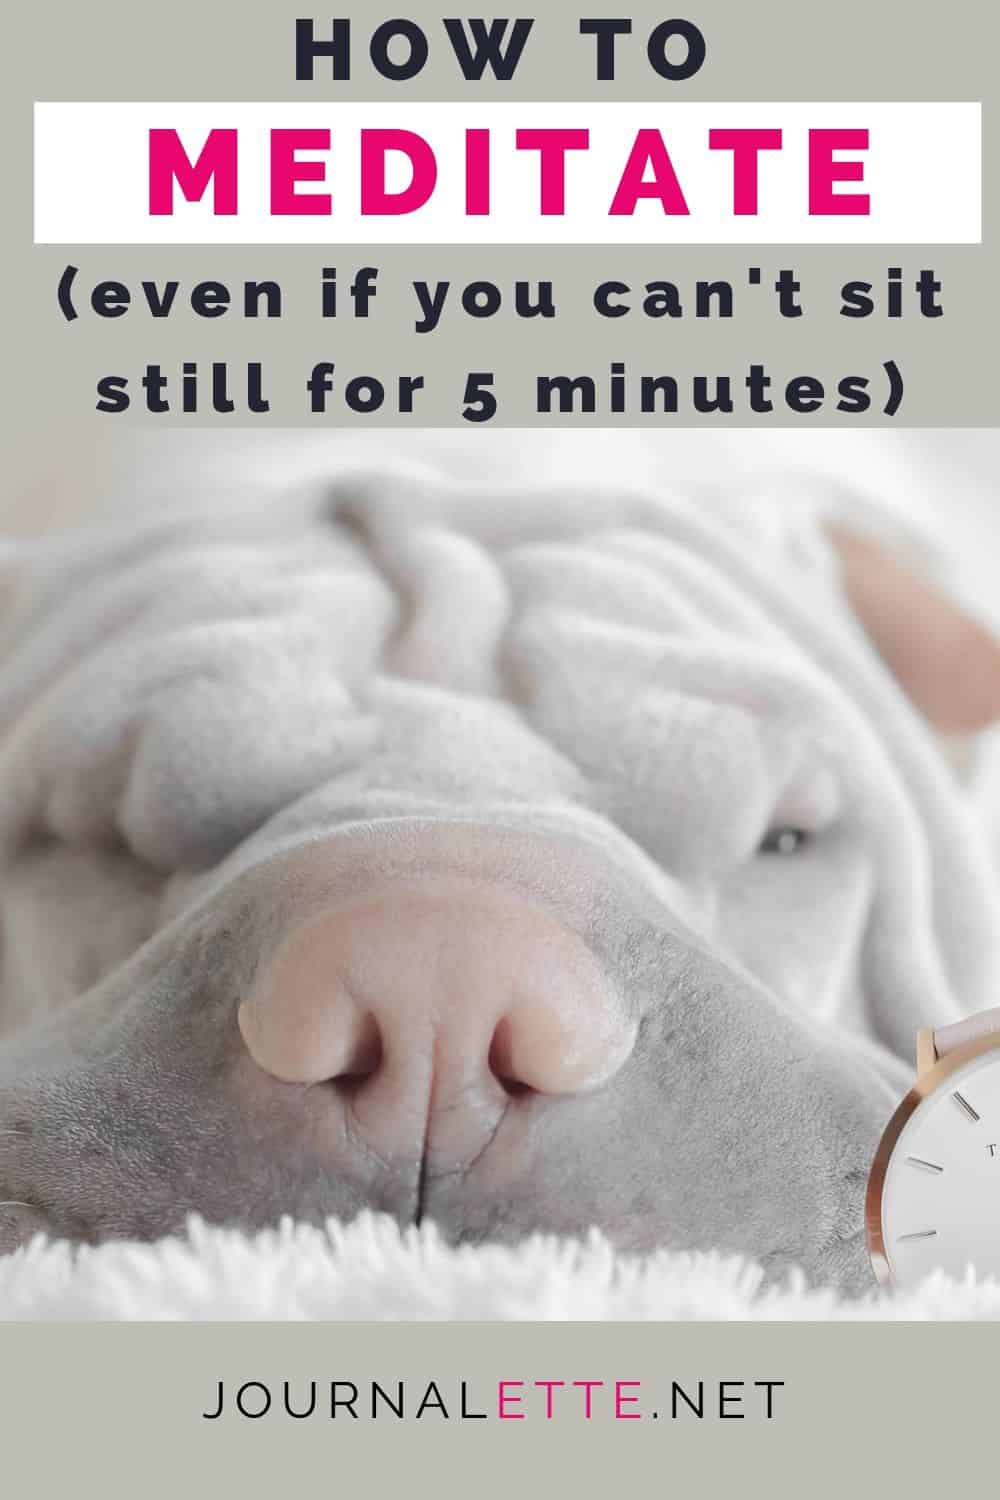 image of animal with clock and text overlay how to meditate even if you can't sit still for 5 minutes